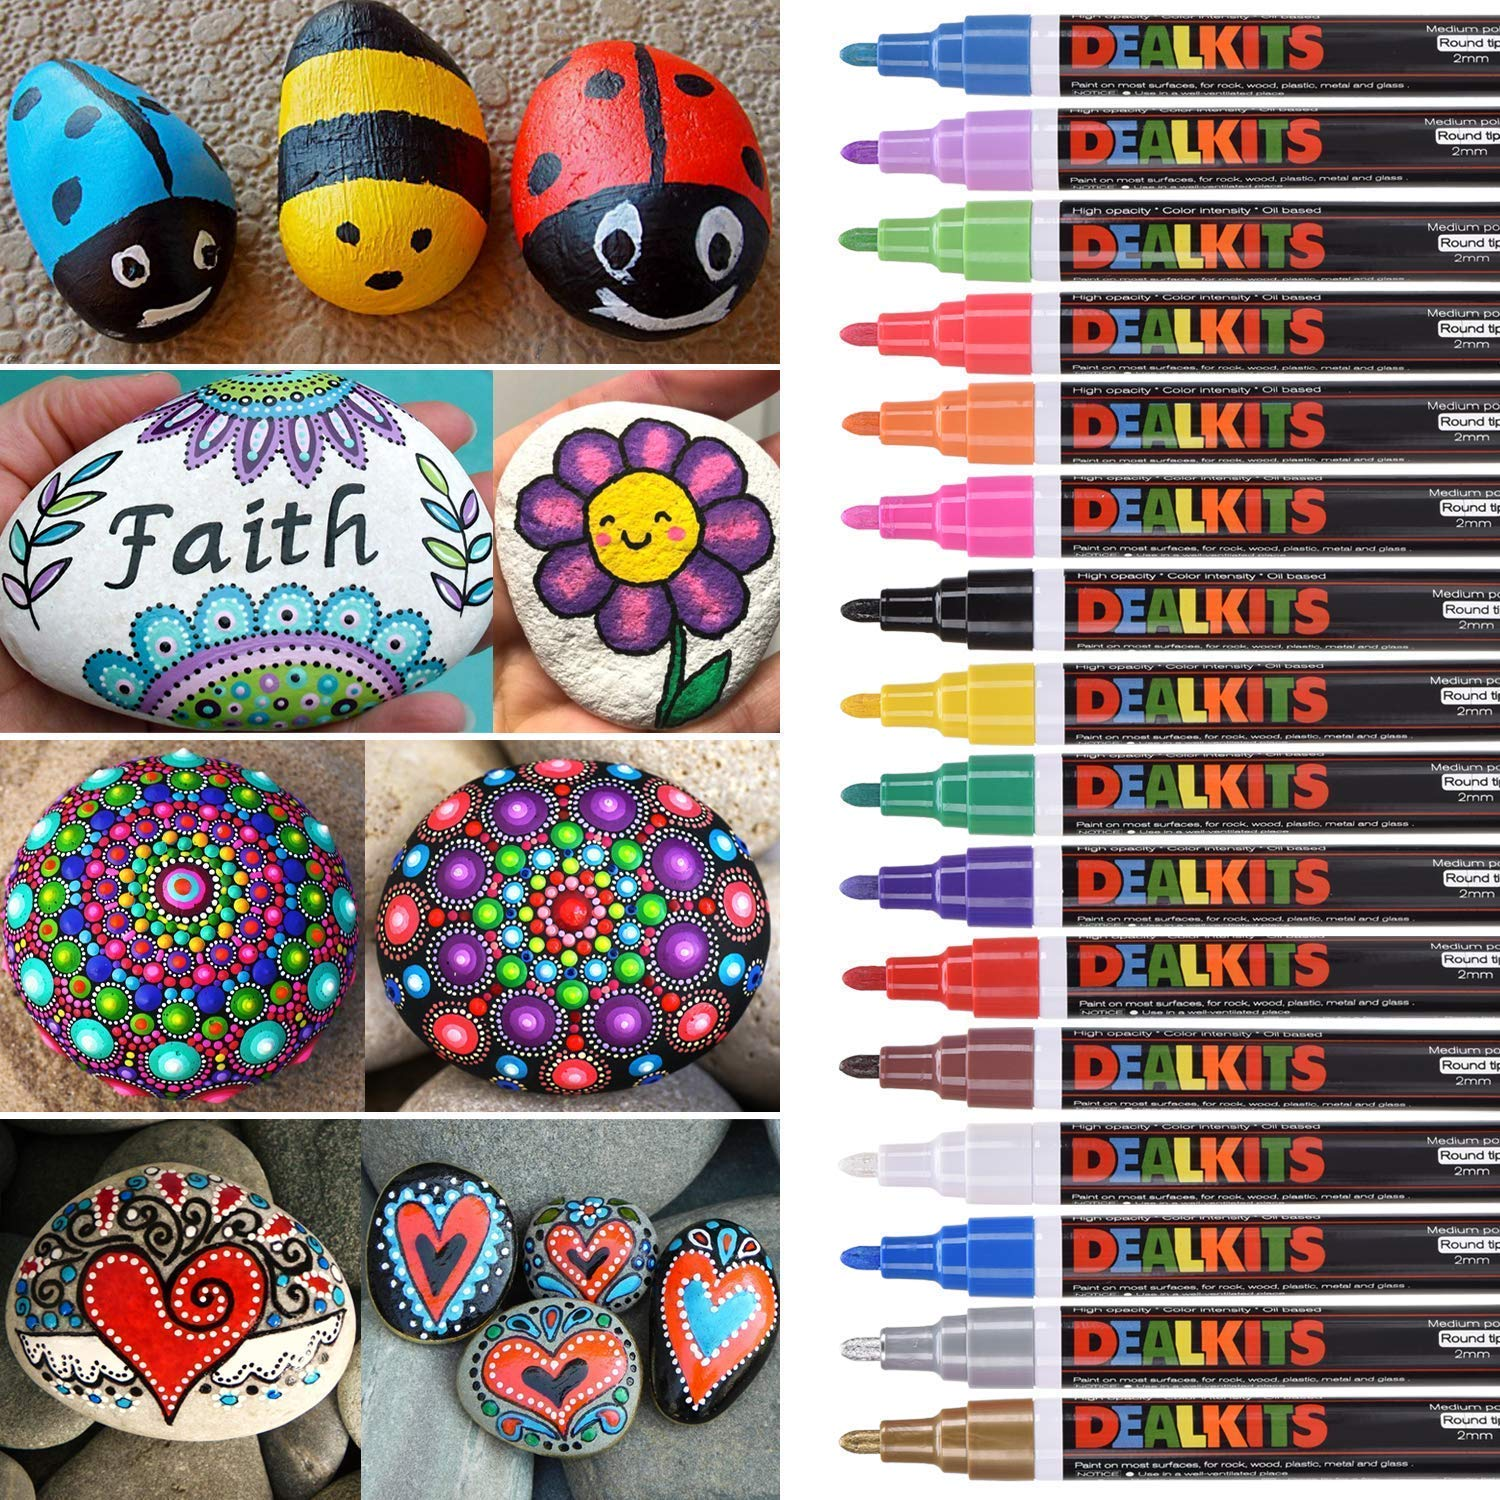 DealKits 16 Colors Paint Marker Pens for Rock Painting [Oil-Based] [Quick Dry] [Water Resistant] for Art Rock Painting Wood Glass Metal and Ceramic, Medium Tip